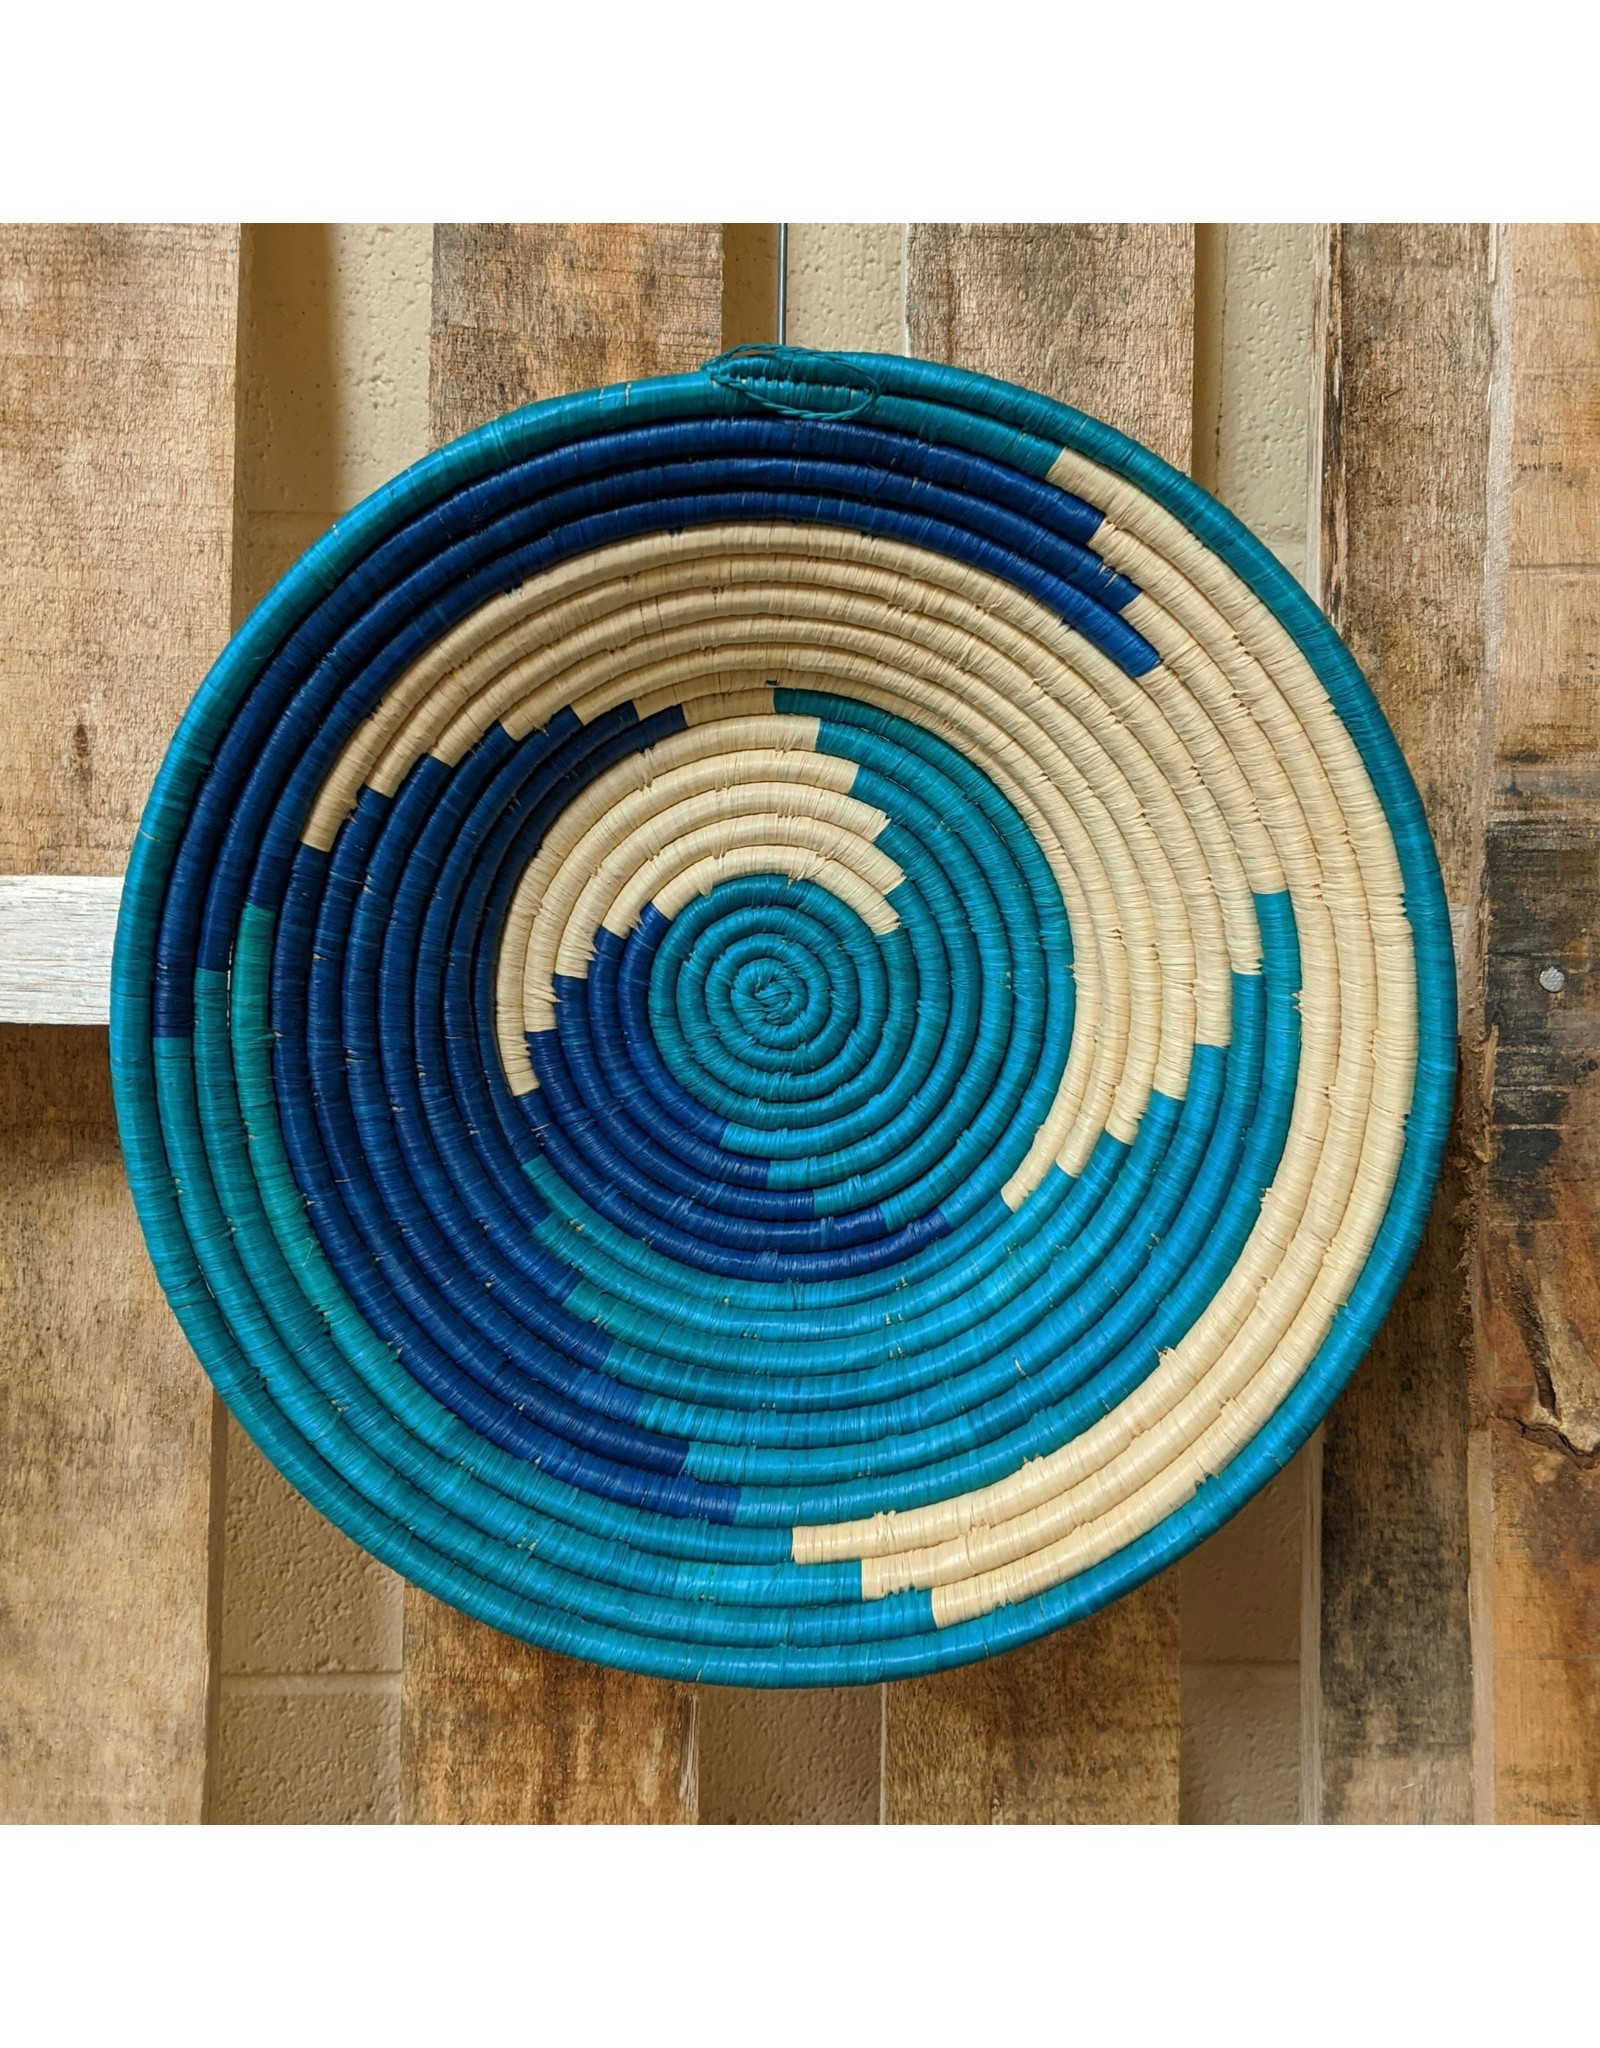 Ten Thousand Villages Swirls And Coils Basket